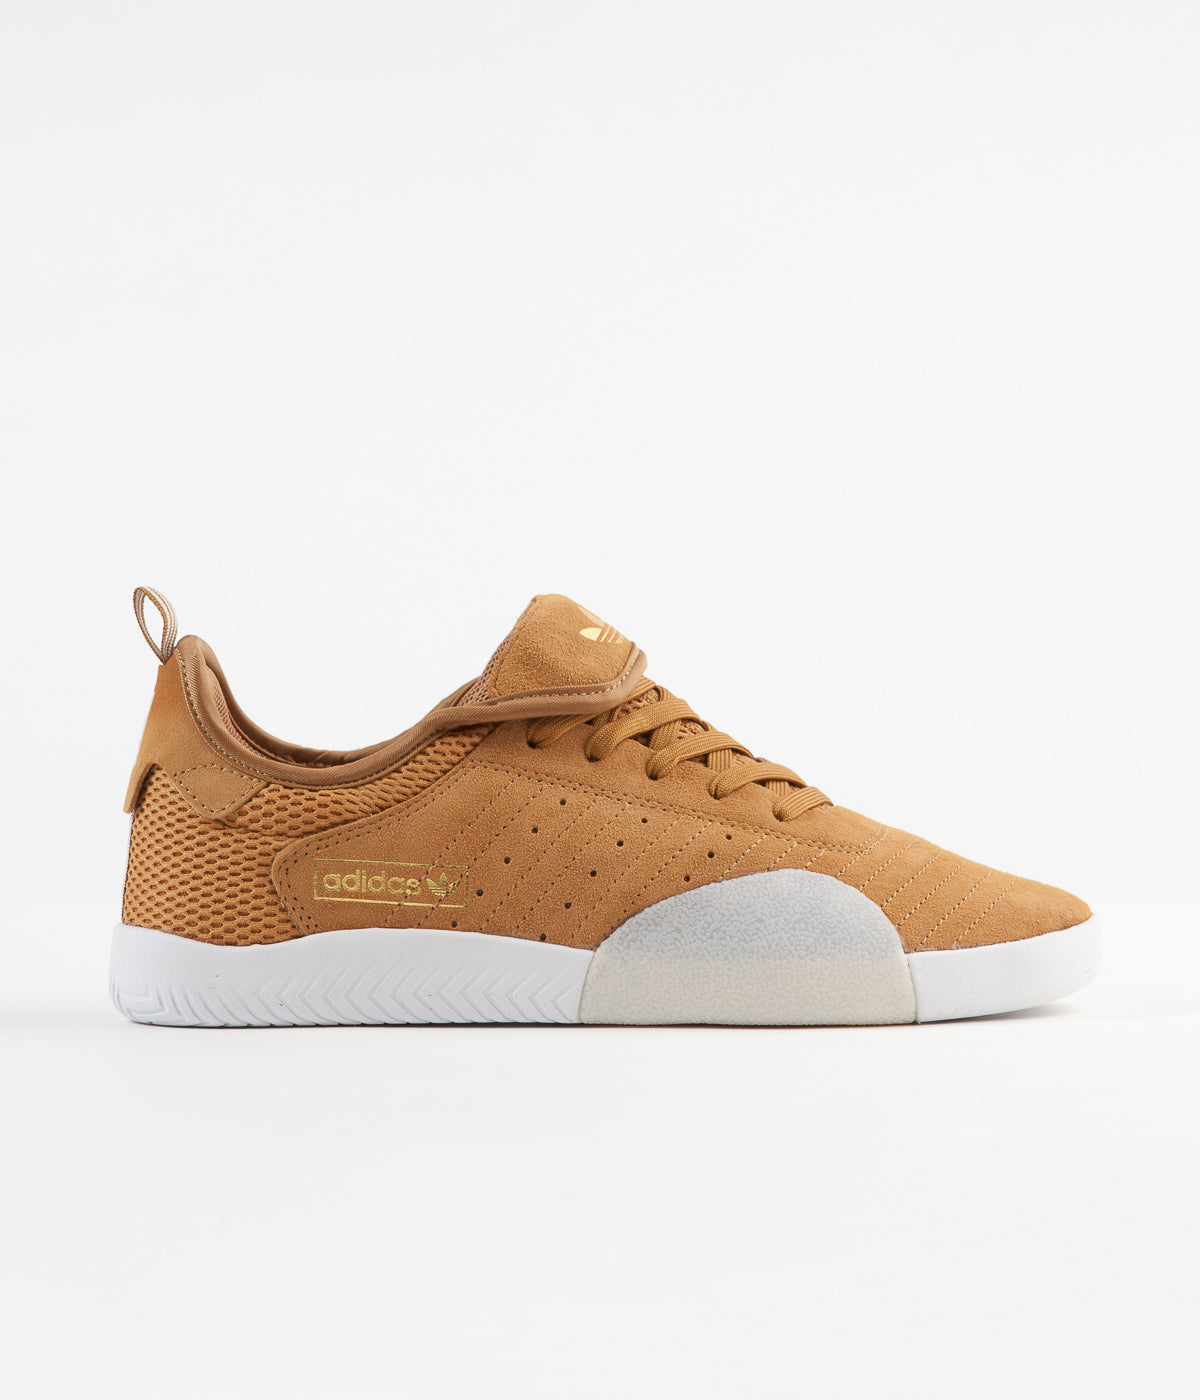 Adidas 3ST.003 Shoes - Mesa / White / Gold Metallic